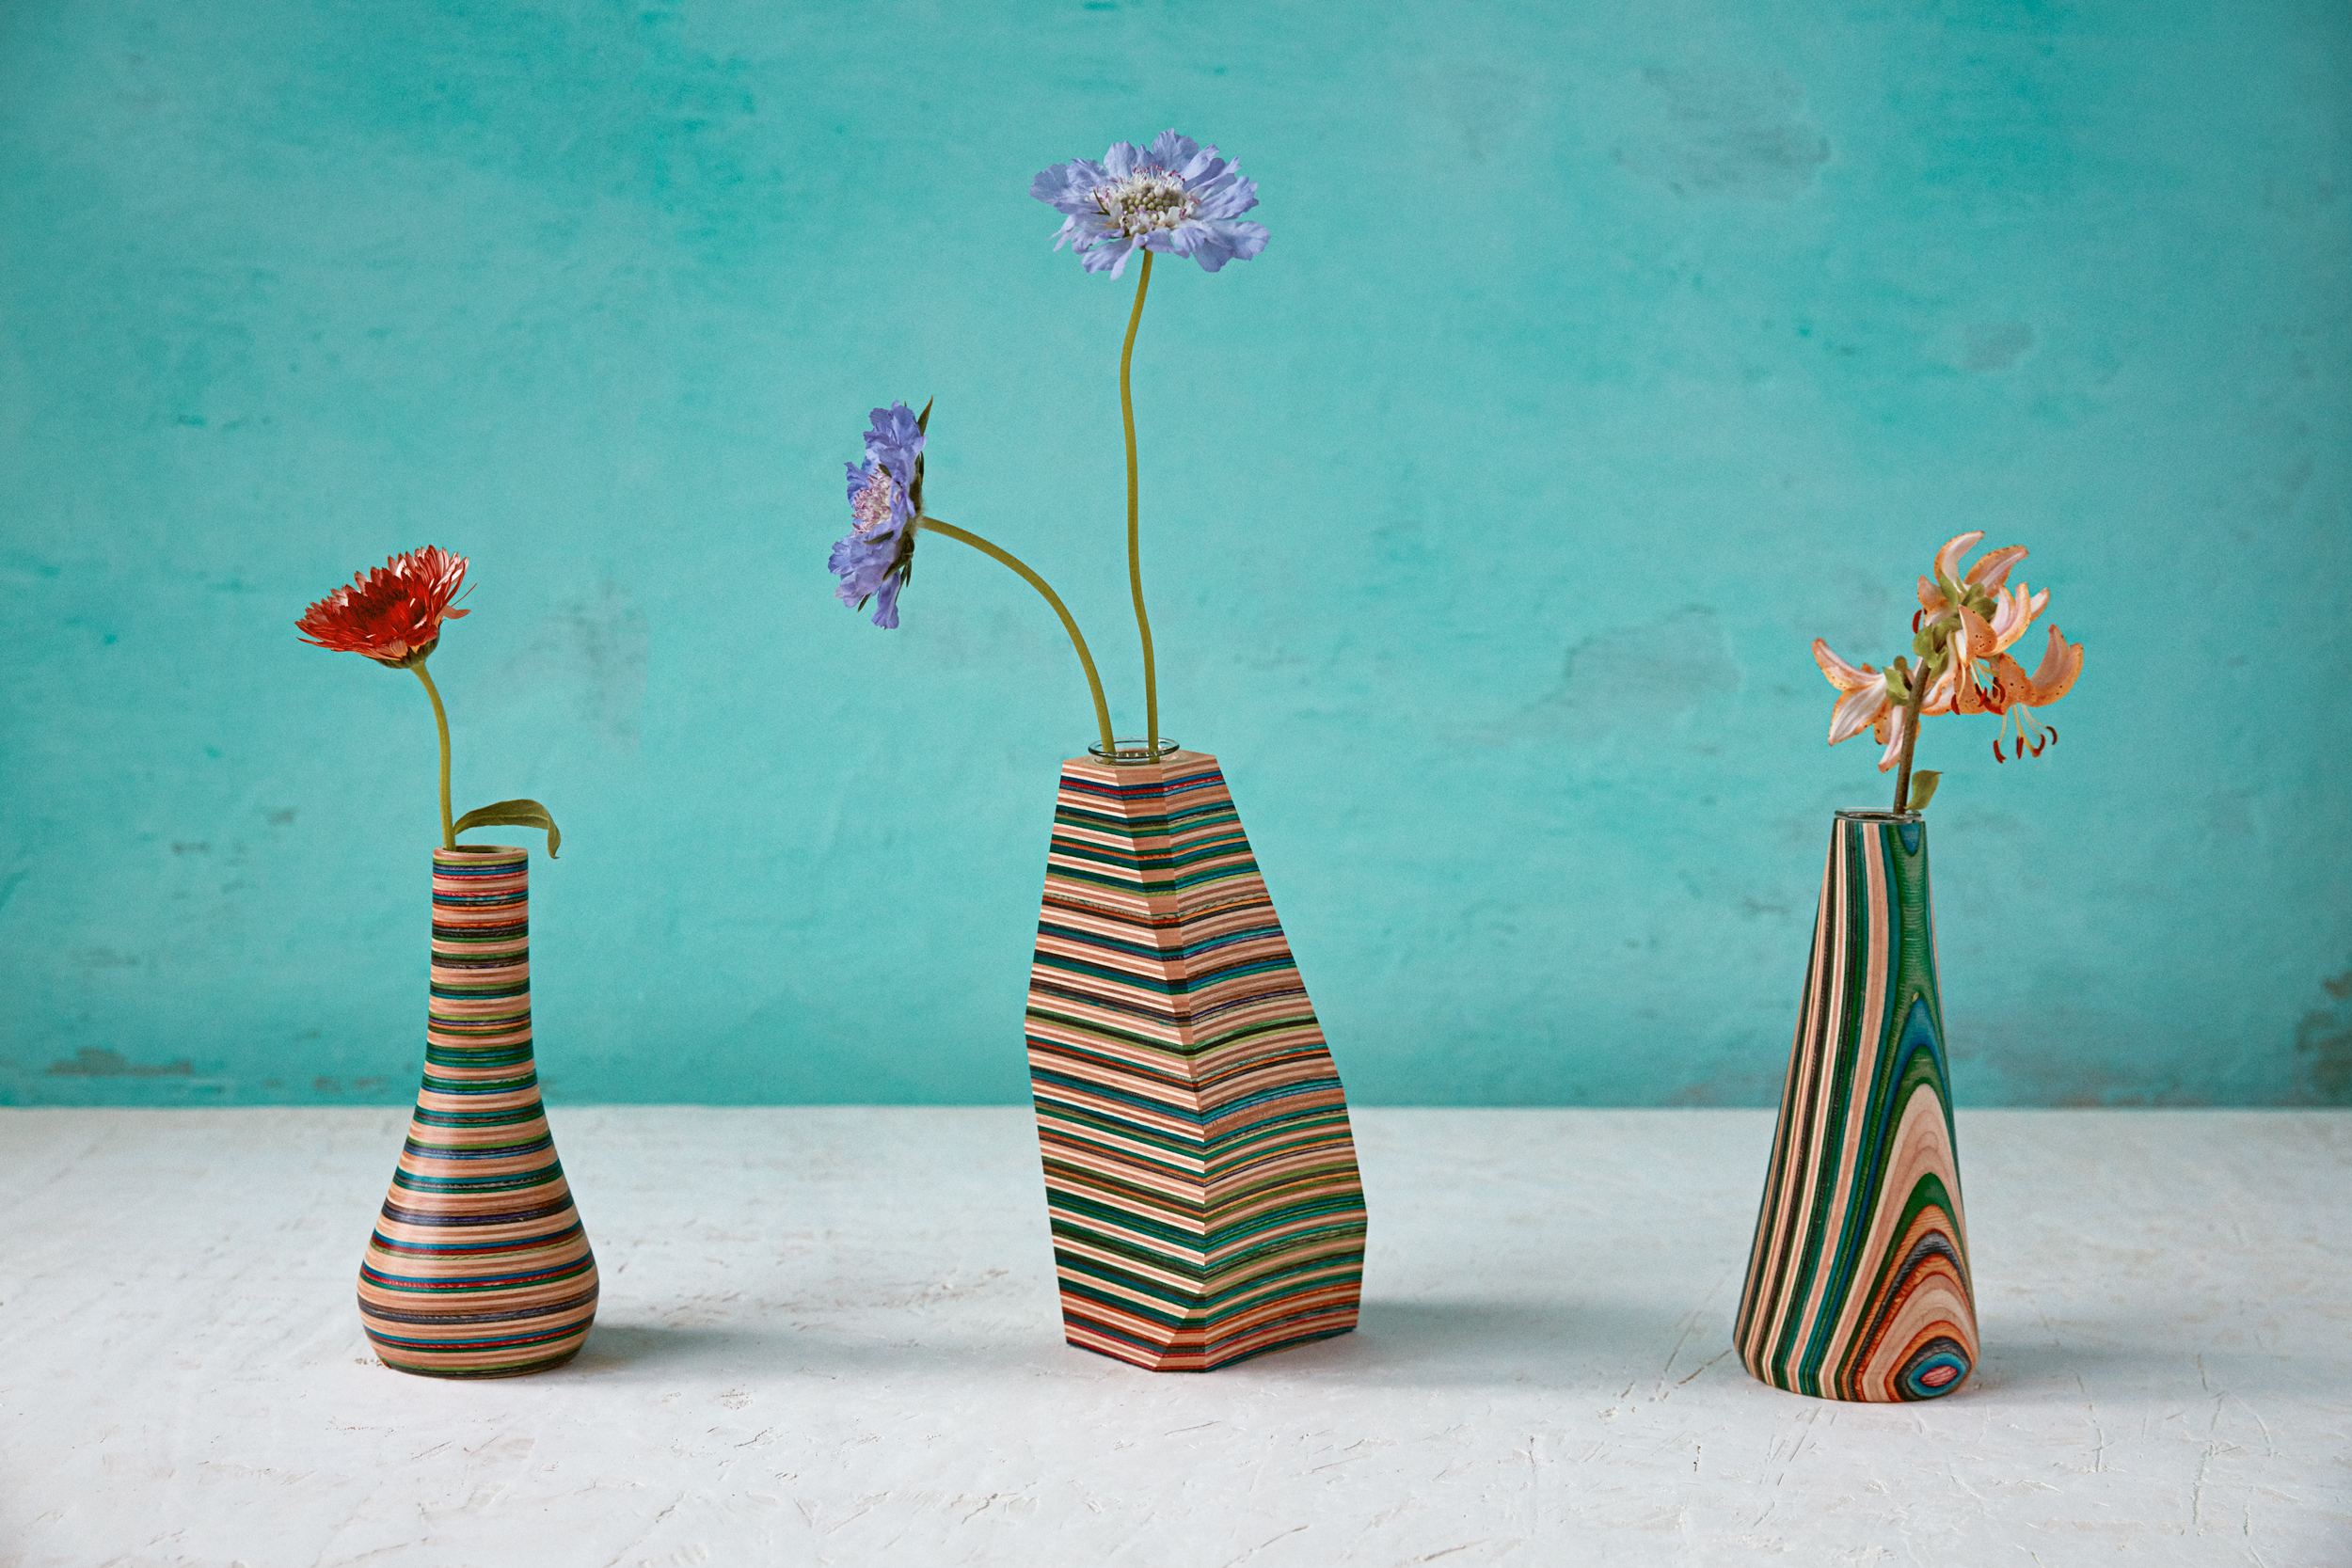 Bud Vases made from recycled skateboards in collaboration with Caju Flora